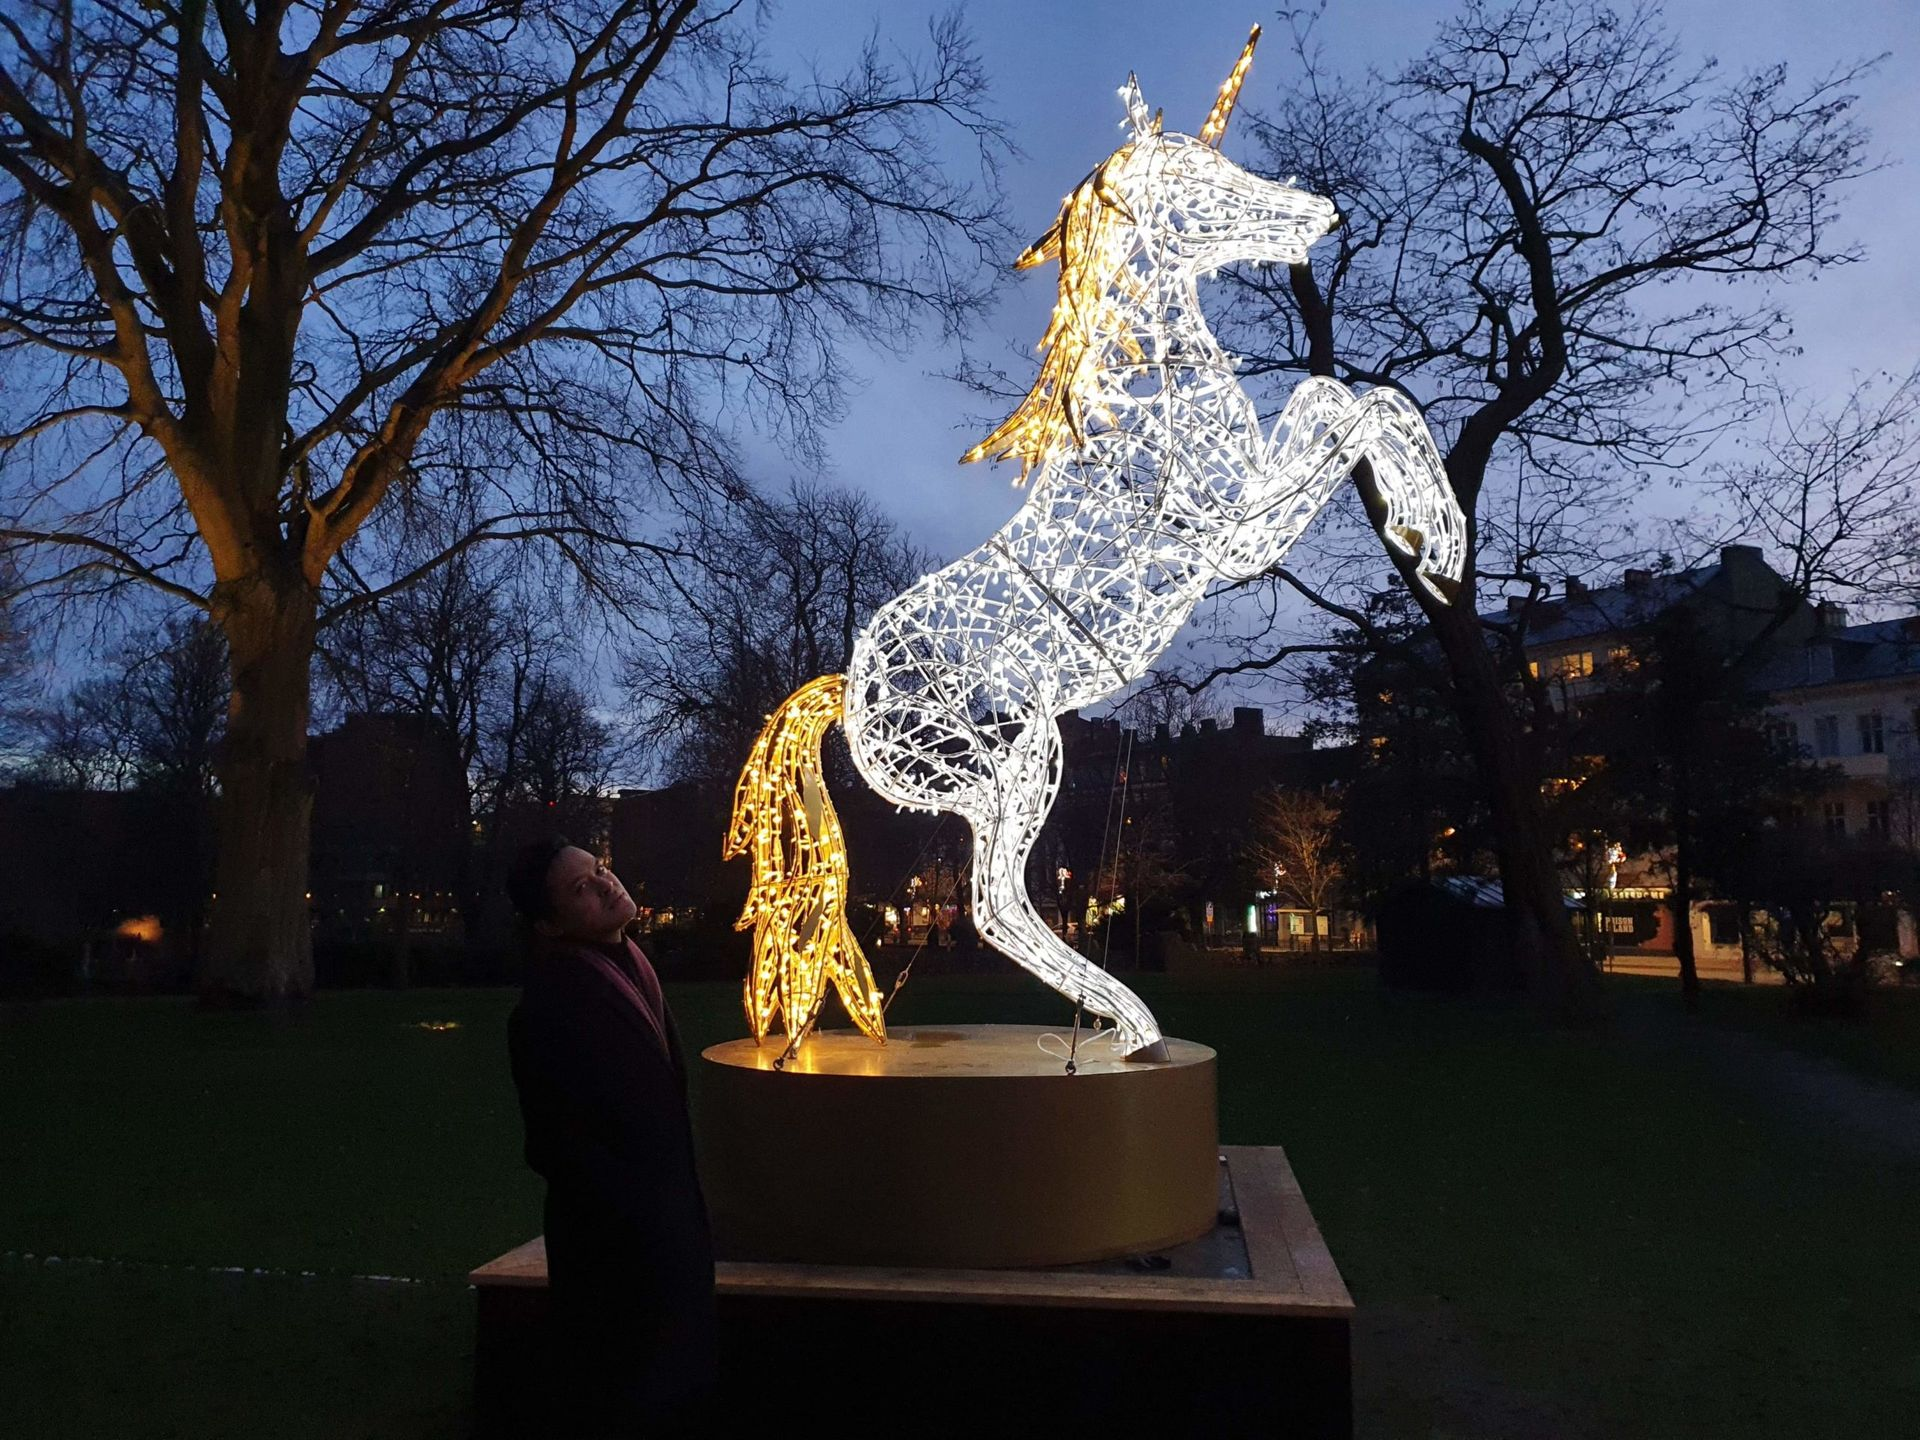 A light sculpture of a unicorn with white lights and a golden tail, mane and horn